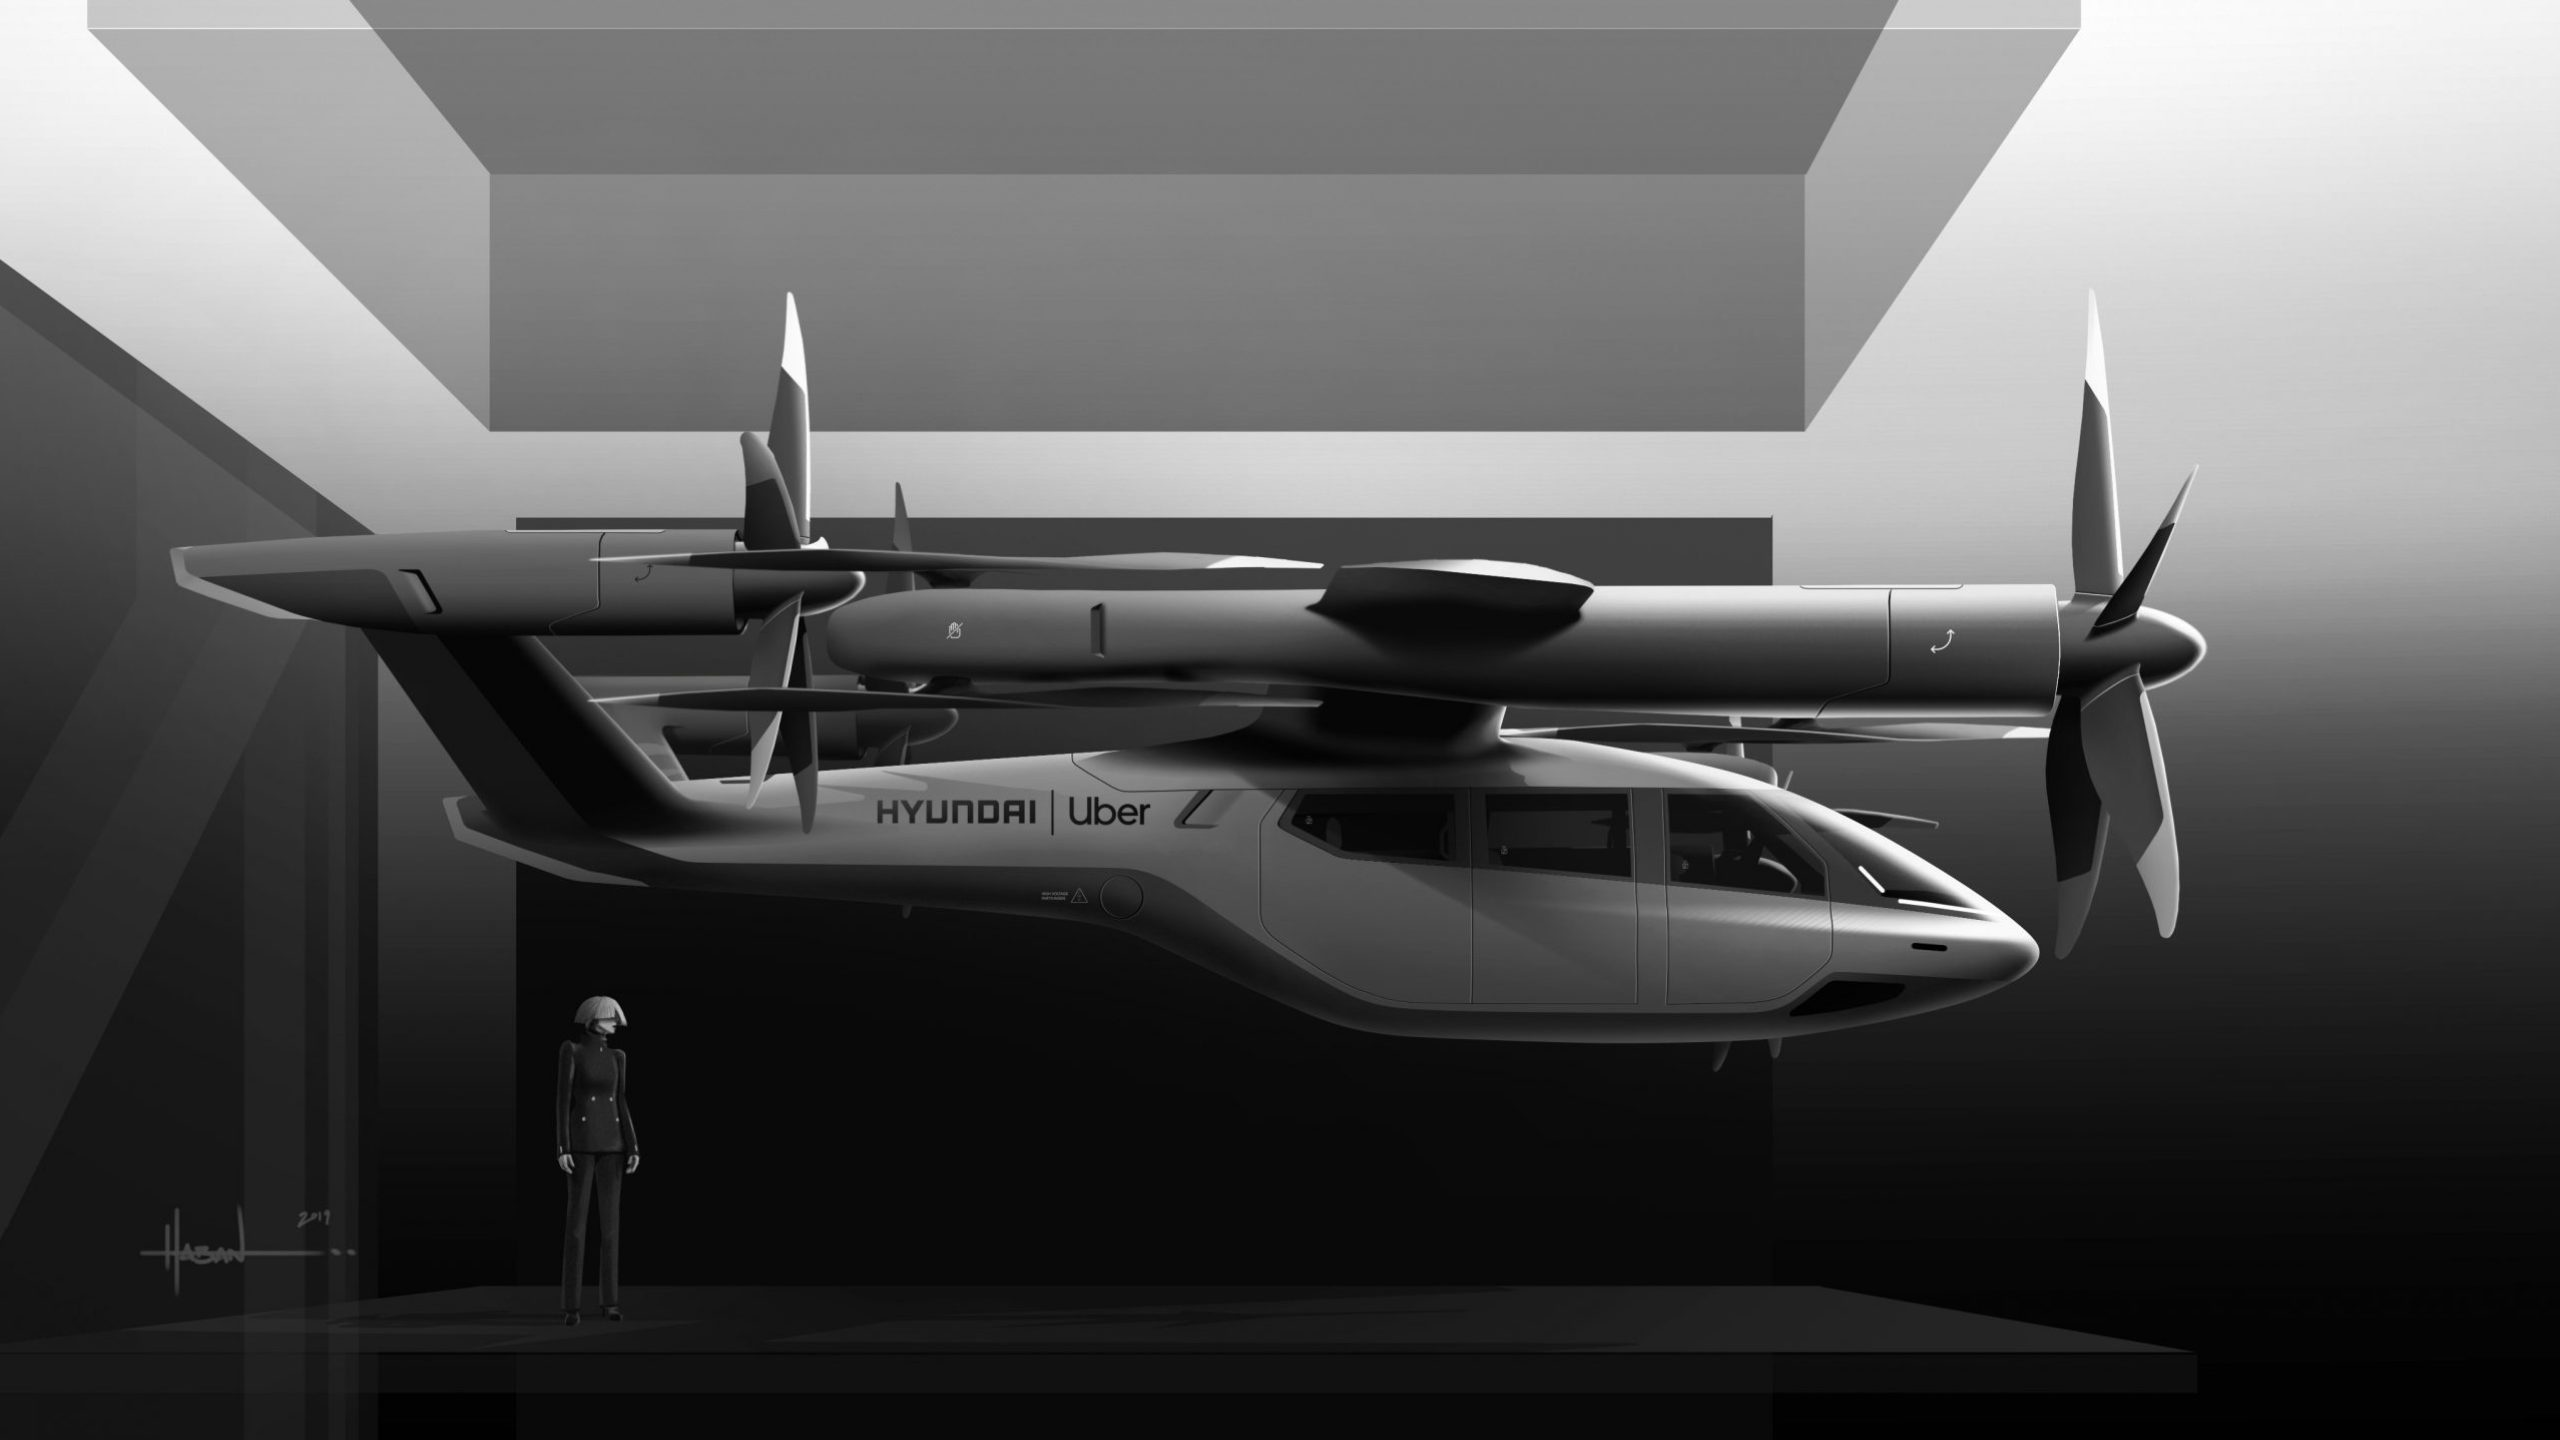 The Uber and Hyundai S-A1 flying taxi model is seen in an image released by Uber technologies.